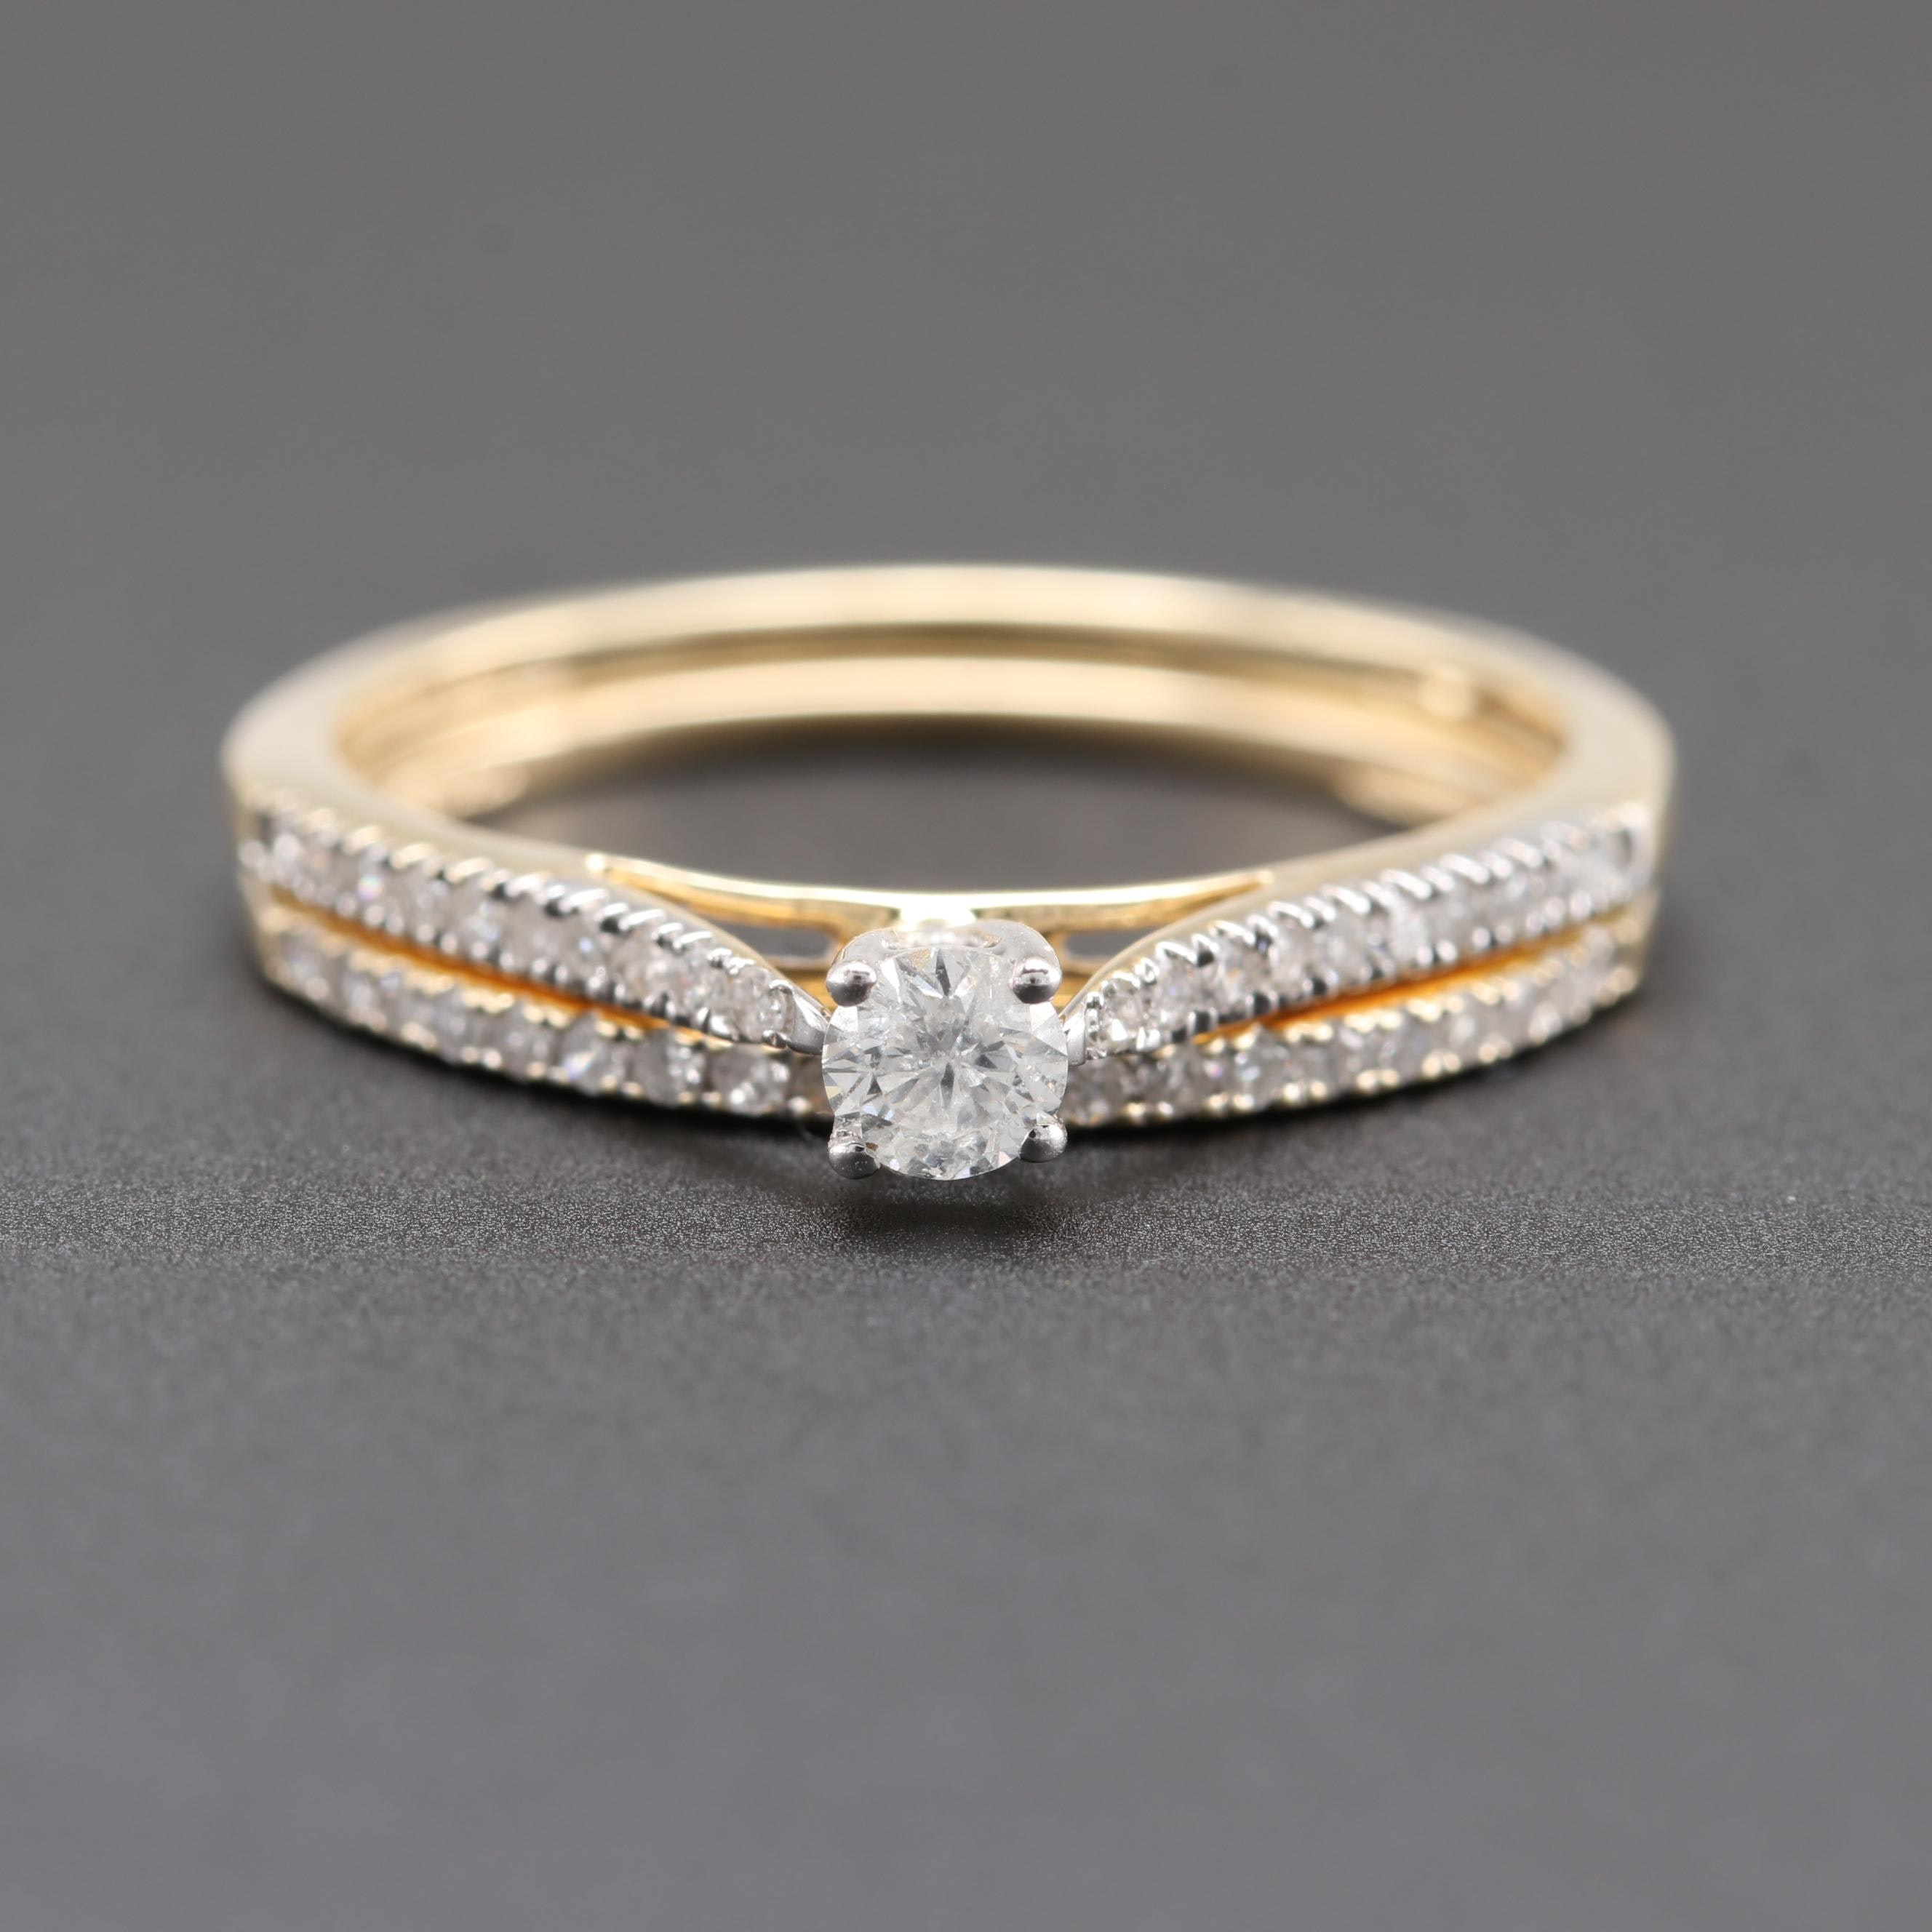 10K and 14K Yellow Gold Diamond Ring Set